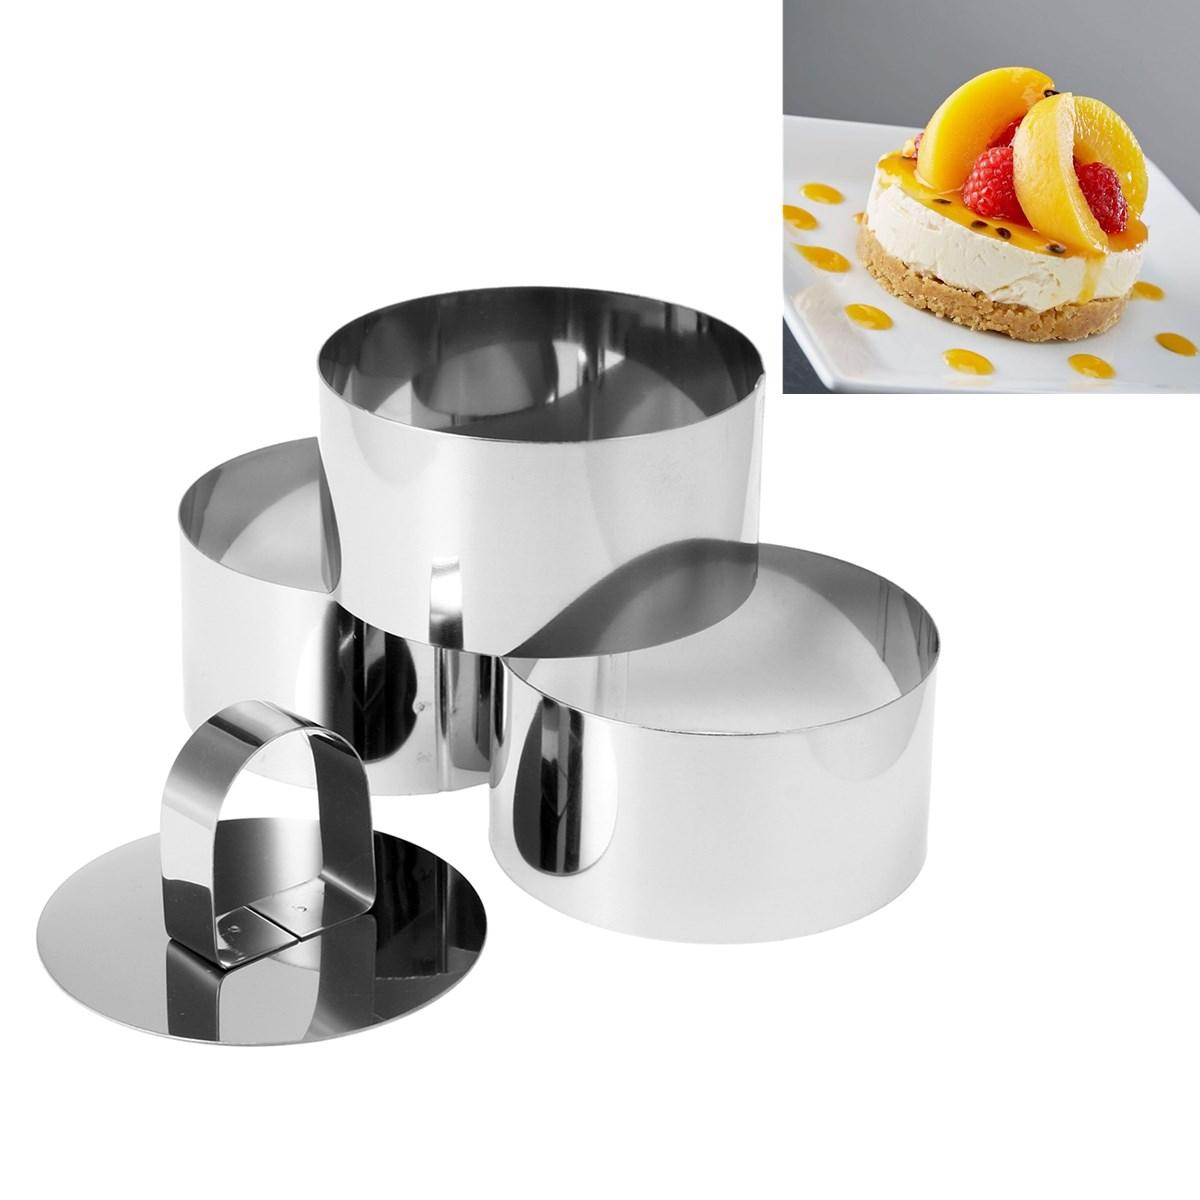 4Pcs Stainless Steel DIY Cake Mould Food Cooking Pusher & Round Rings Baking Tools фото